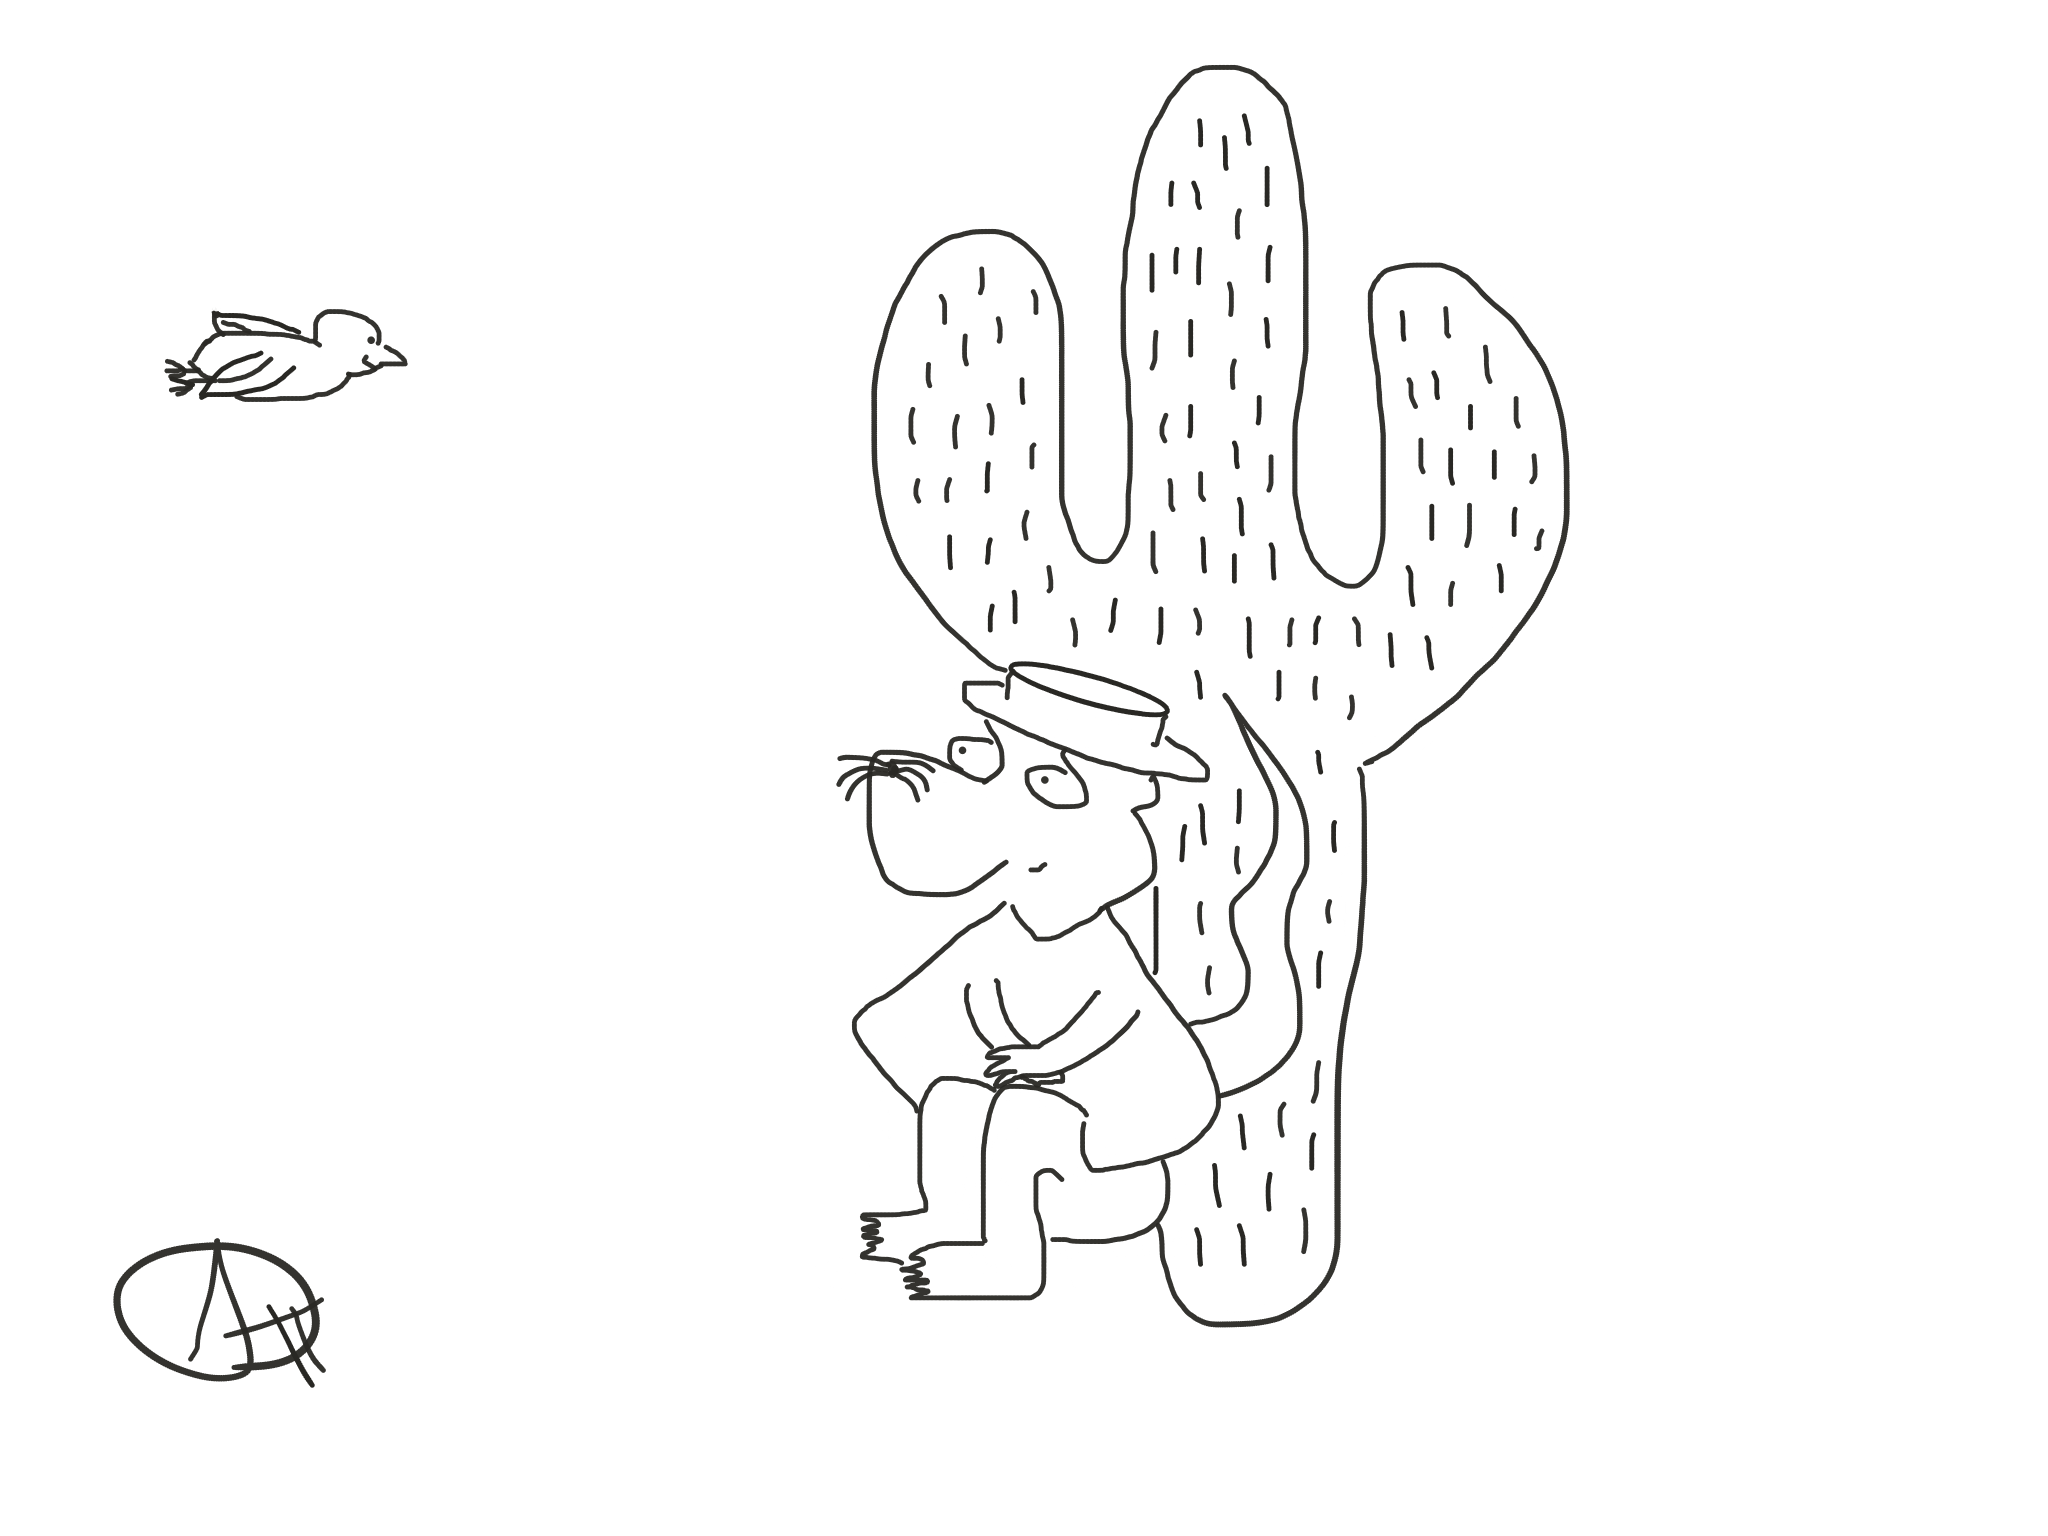 Resting cactus and friendly bird, The Happy Rat cartoon